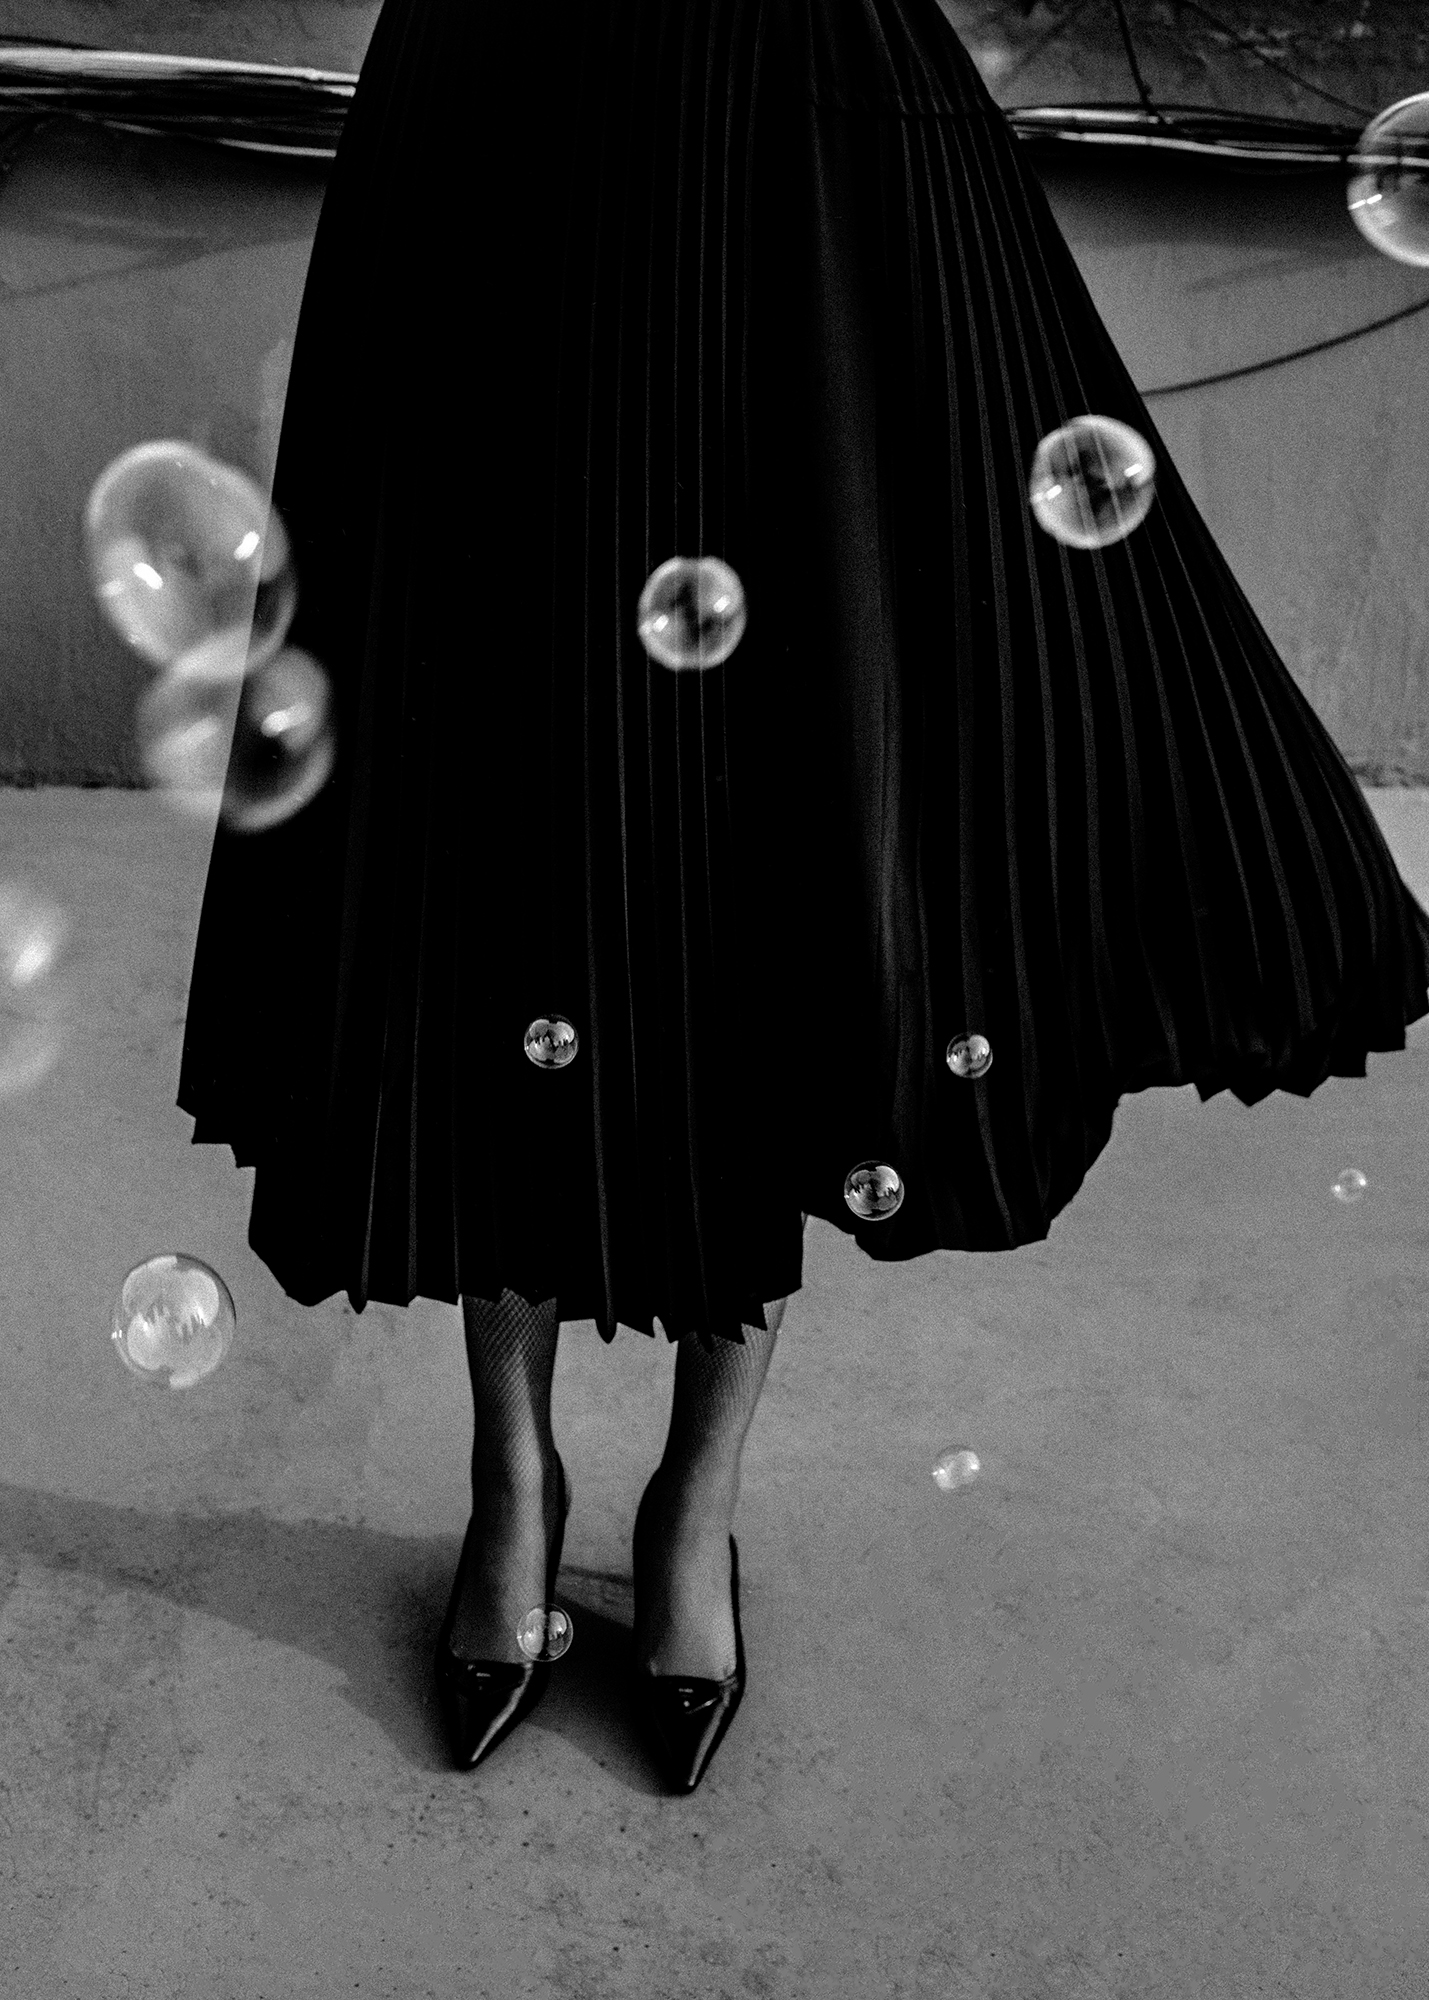 Just as bubbles pop out in a moment, I hope that this moment where we are now will be invisible like bubbles and return to the original form of our society.